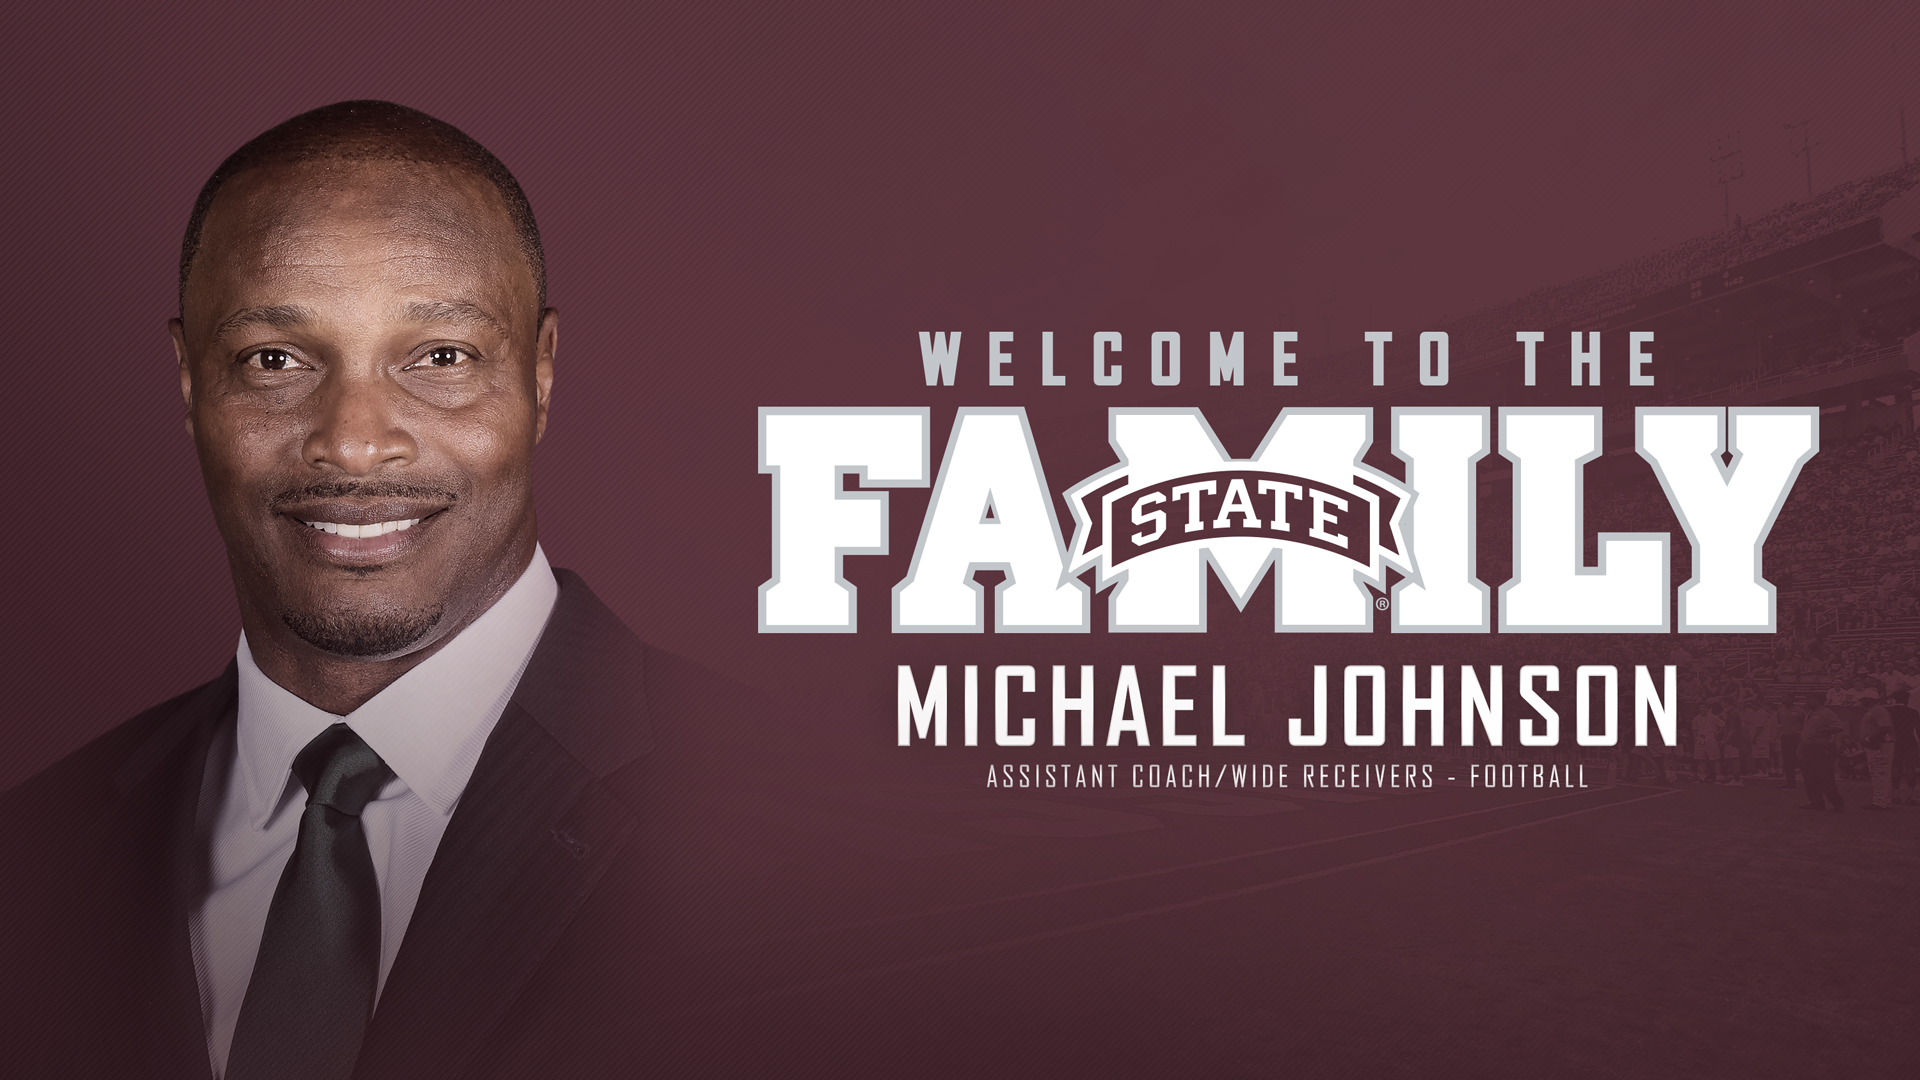 467a19344af Moorhead Announces Johnson as Wide Receivers Coach - Mississippi State